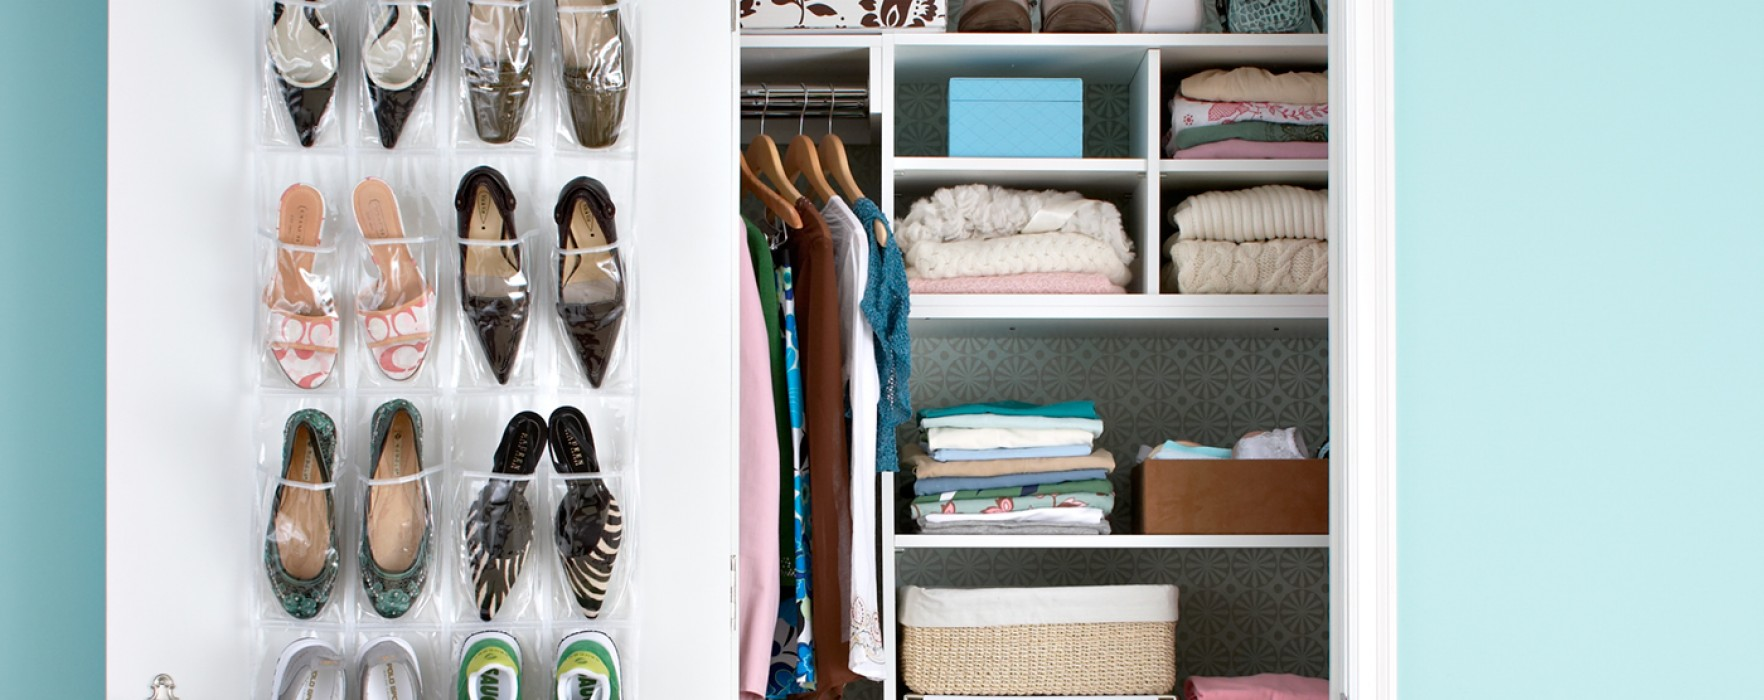 Small Closet Organization: 7 Tips To Create Space | Better Homes And  Gardens Real Estate Life